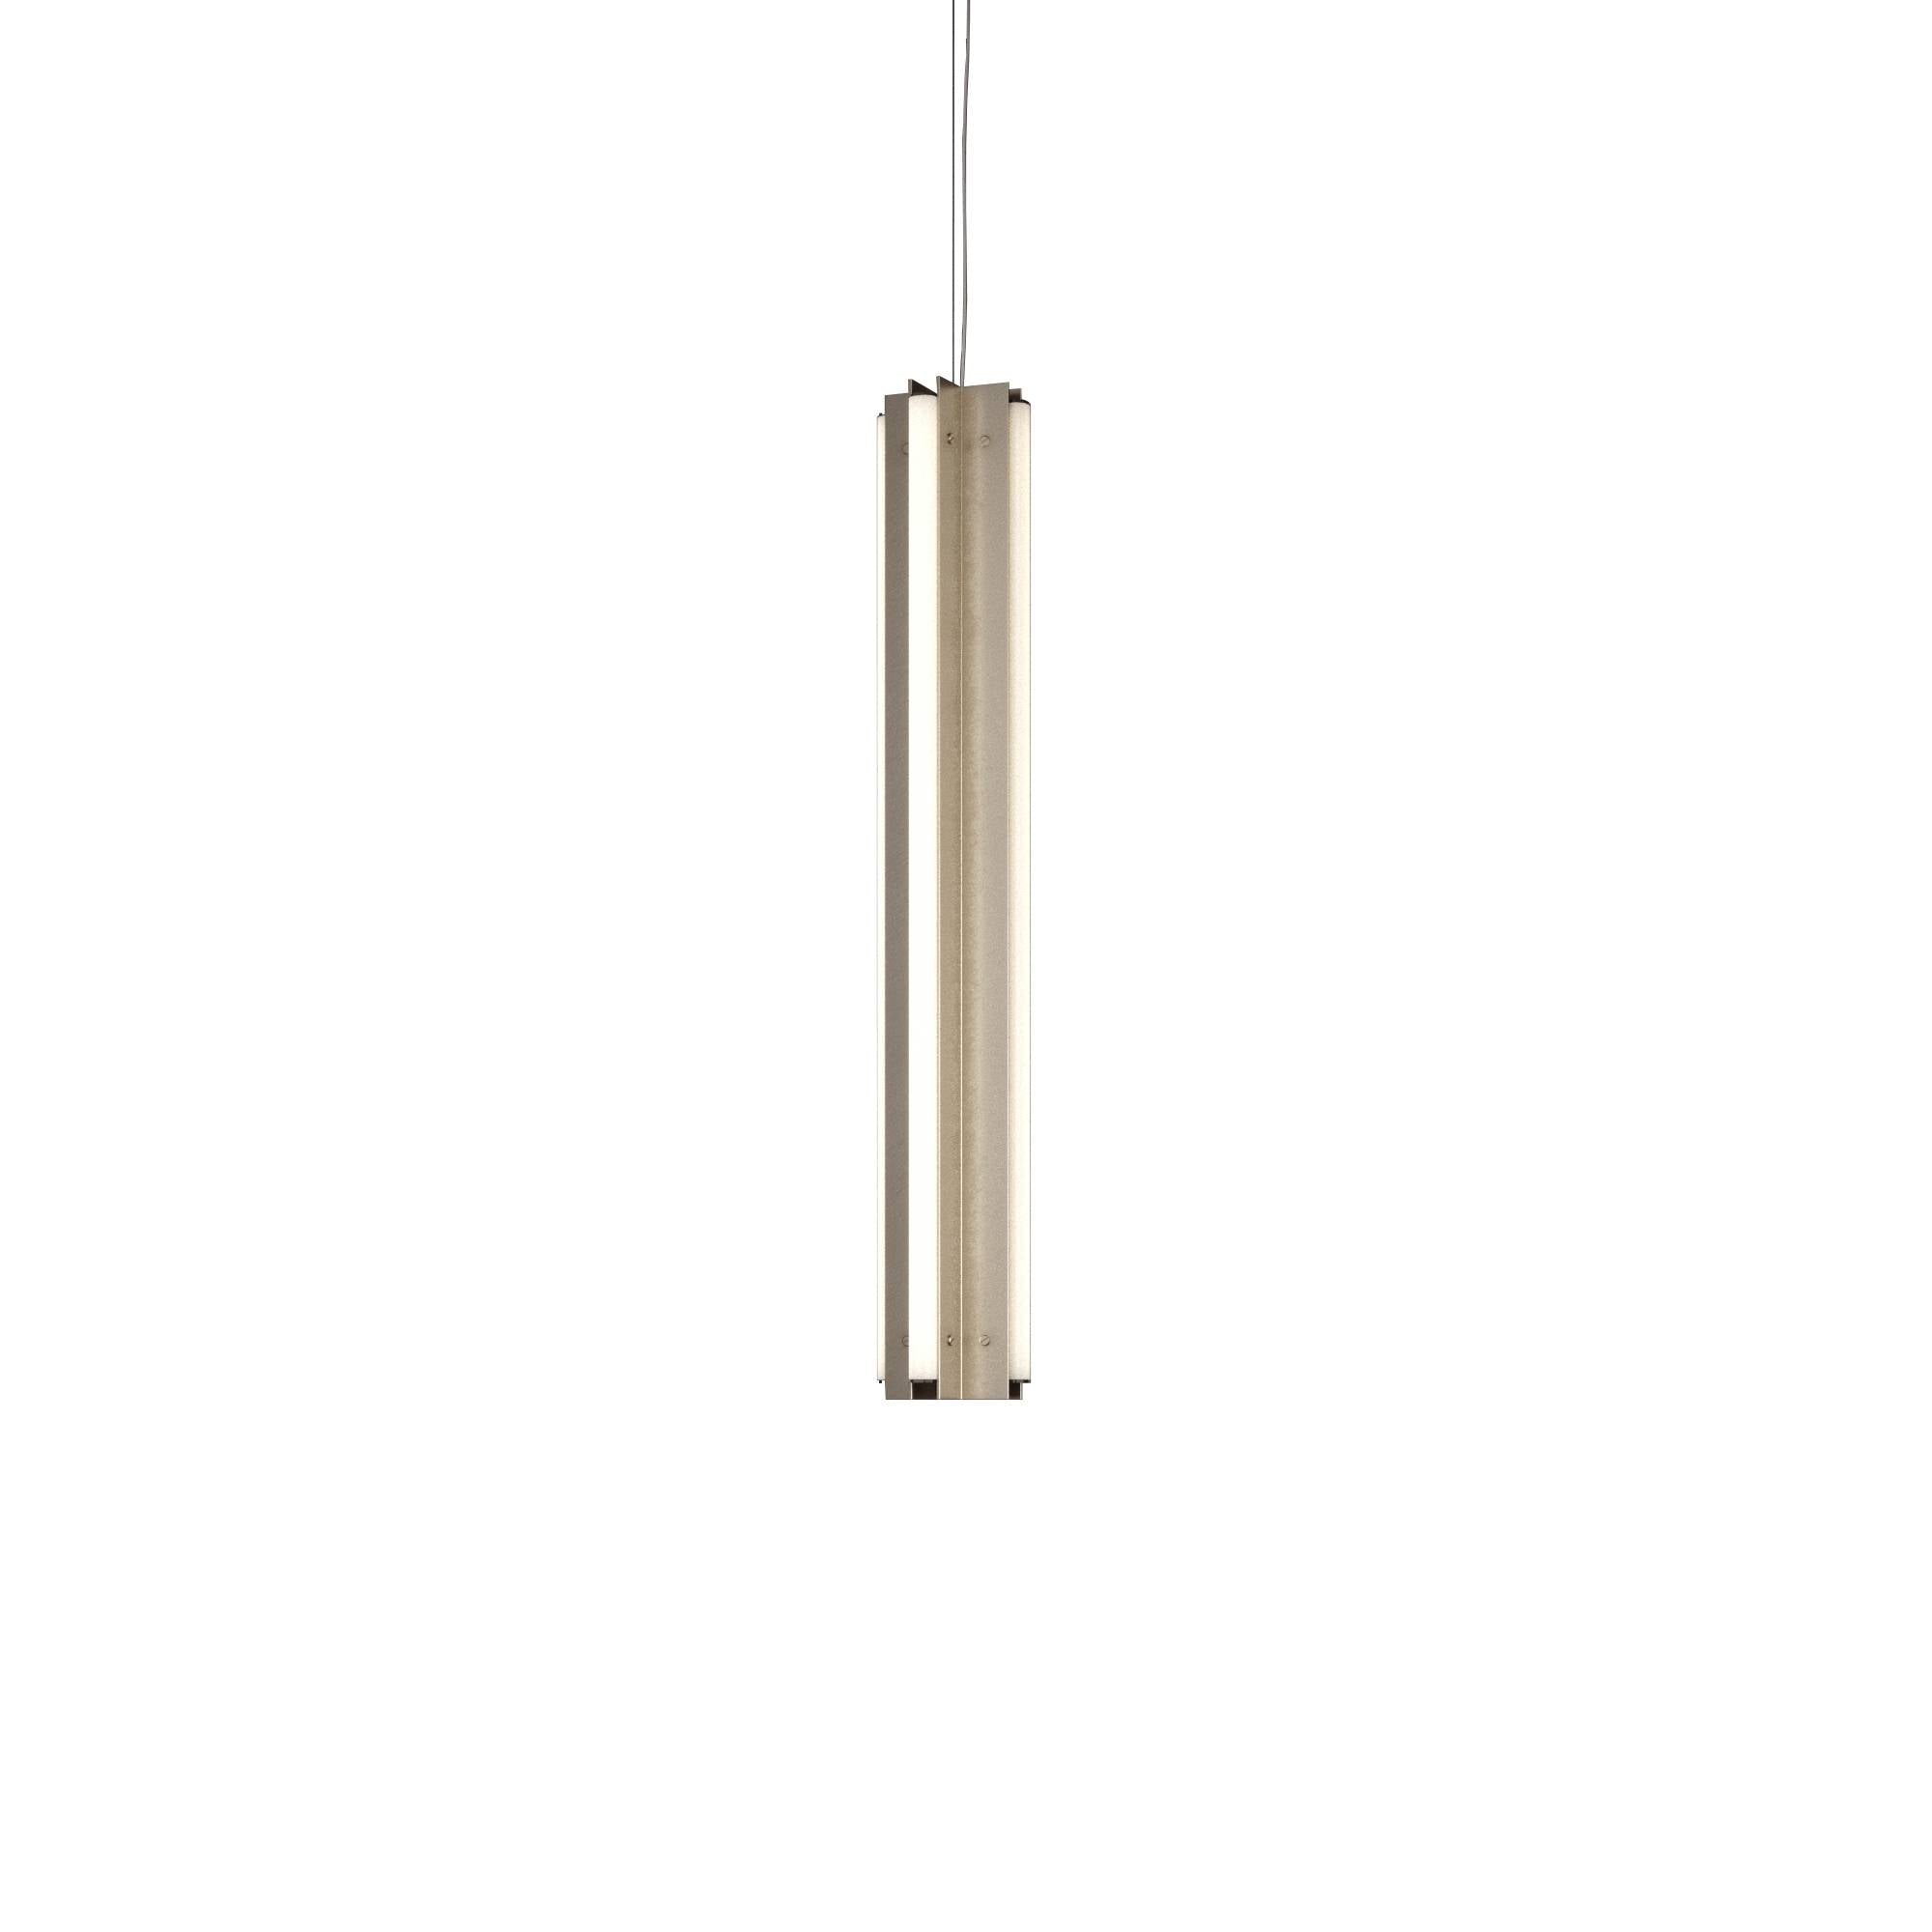 "Axis X Suspension Light: 36"" + Antique Pewter + Vertical"